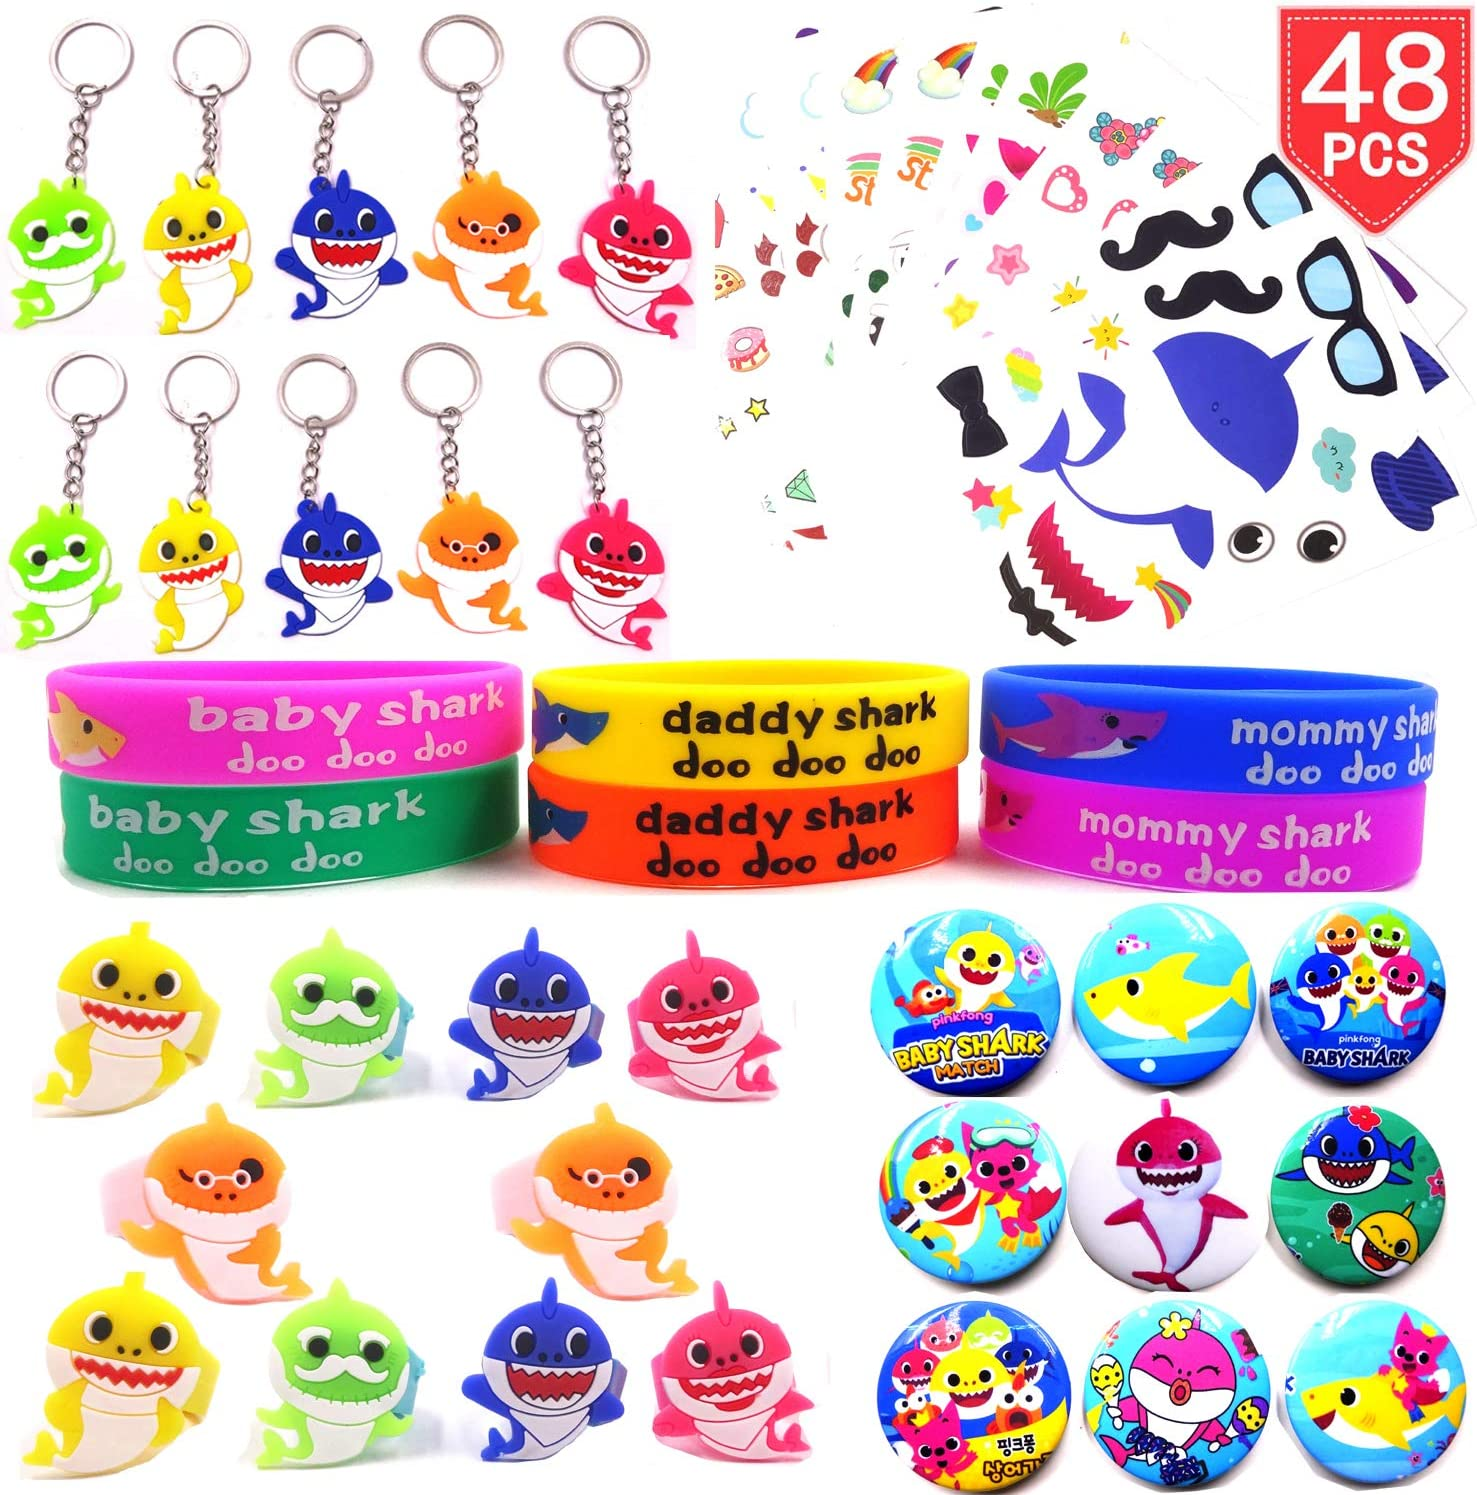 Baby Shark Party Favors Supplies, 48pack Shark Themed Birthday Party Gift Fillers with Rubber Bracelets, Keychains, Necklace, Badge and Sticker Tattoo for Kids Birtday Party Decoration